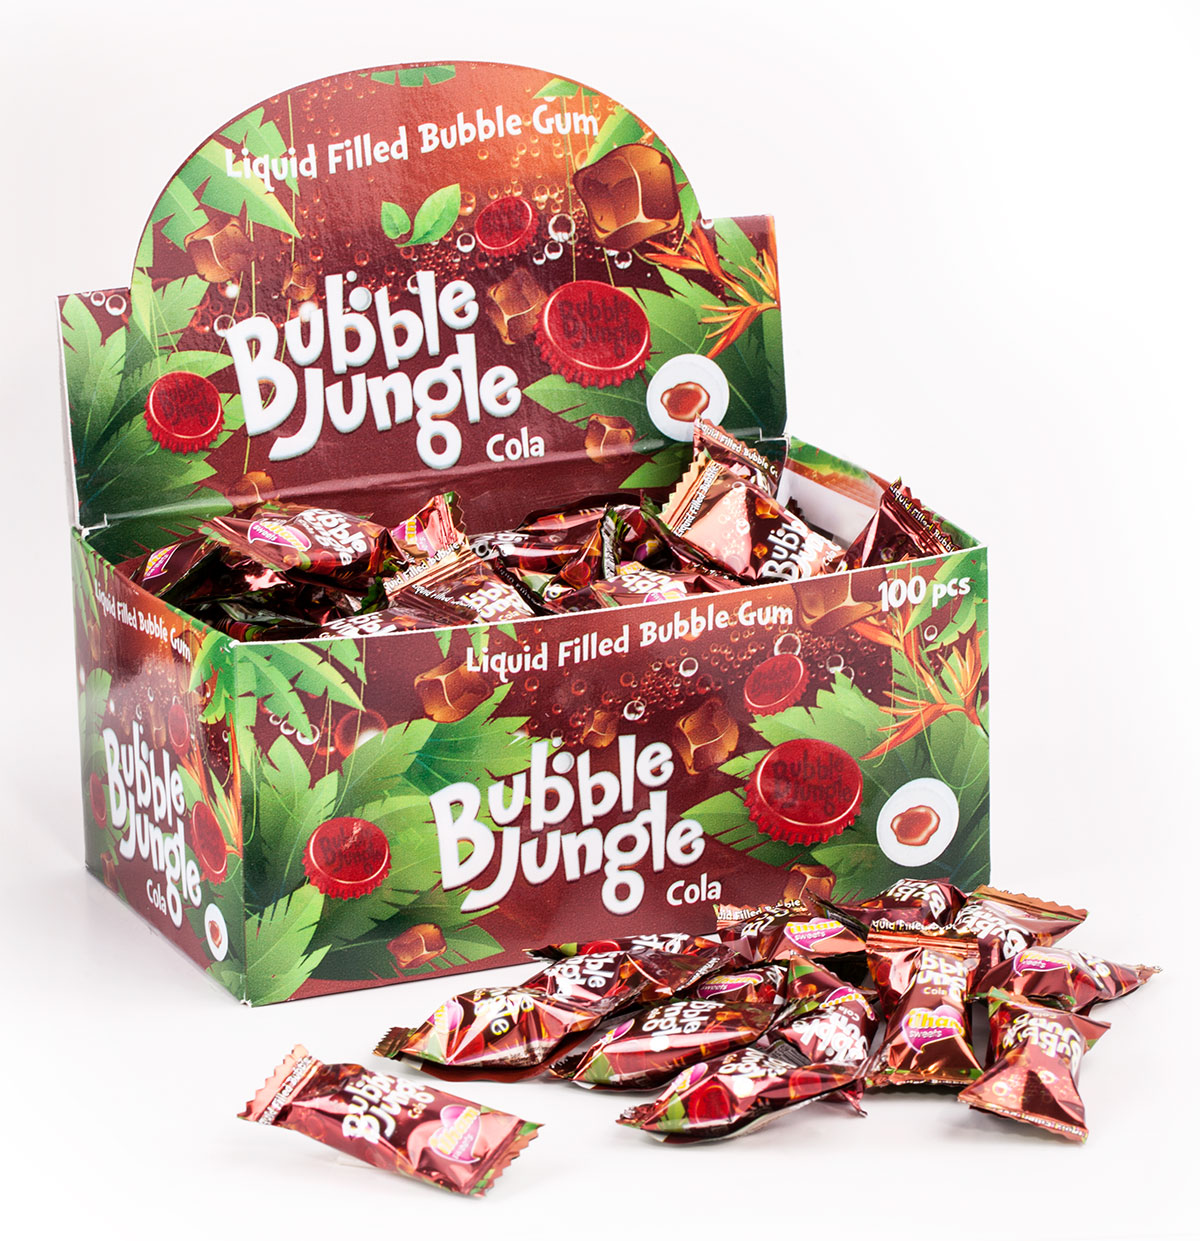 BUBBLE JUNGLE LIQUID FILLED BUBBLE GUM - COLA